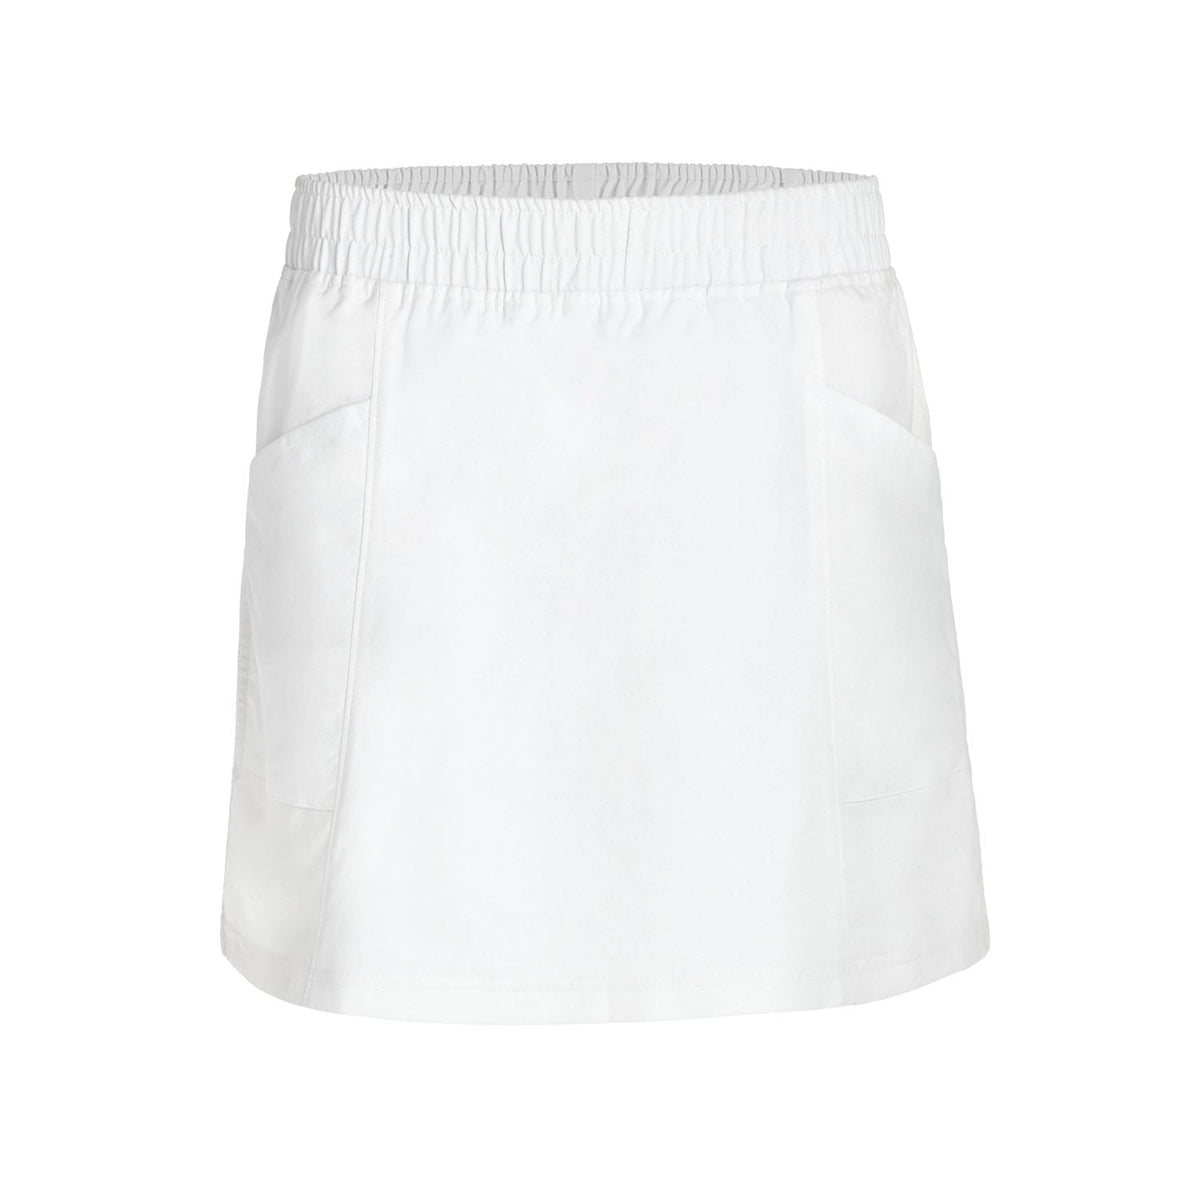 Swing Skirt - tasc Performance (White)